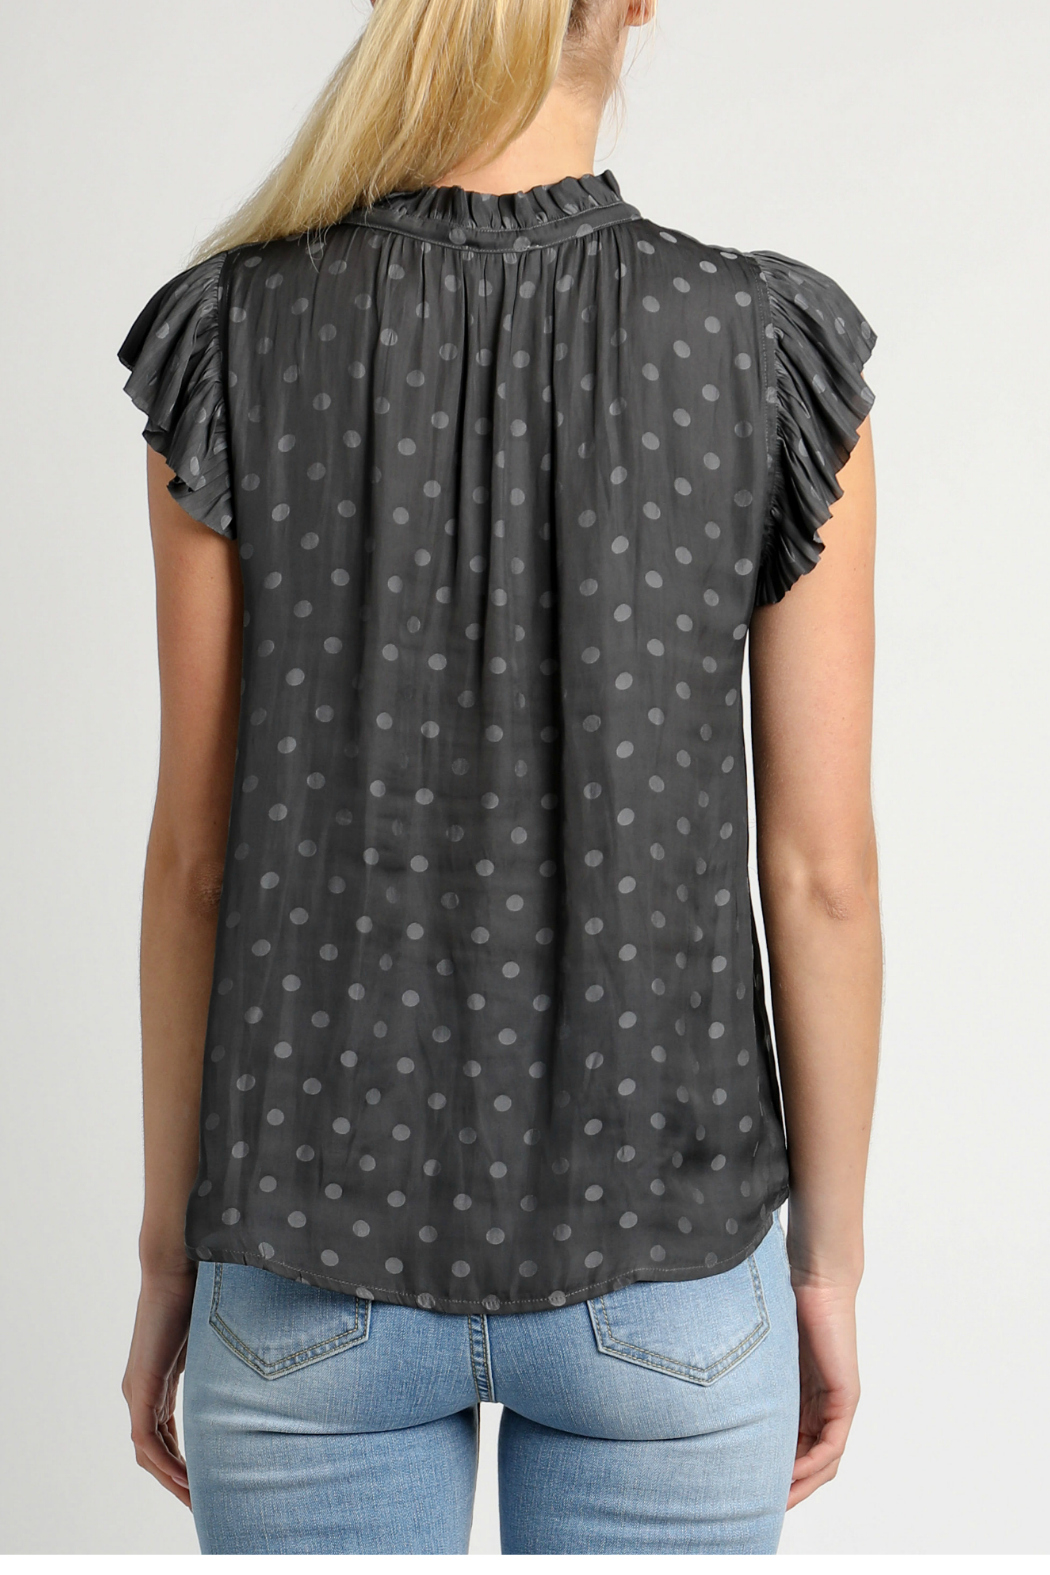 Current Air Pilka dot blouse - Front Full Image